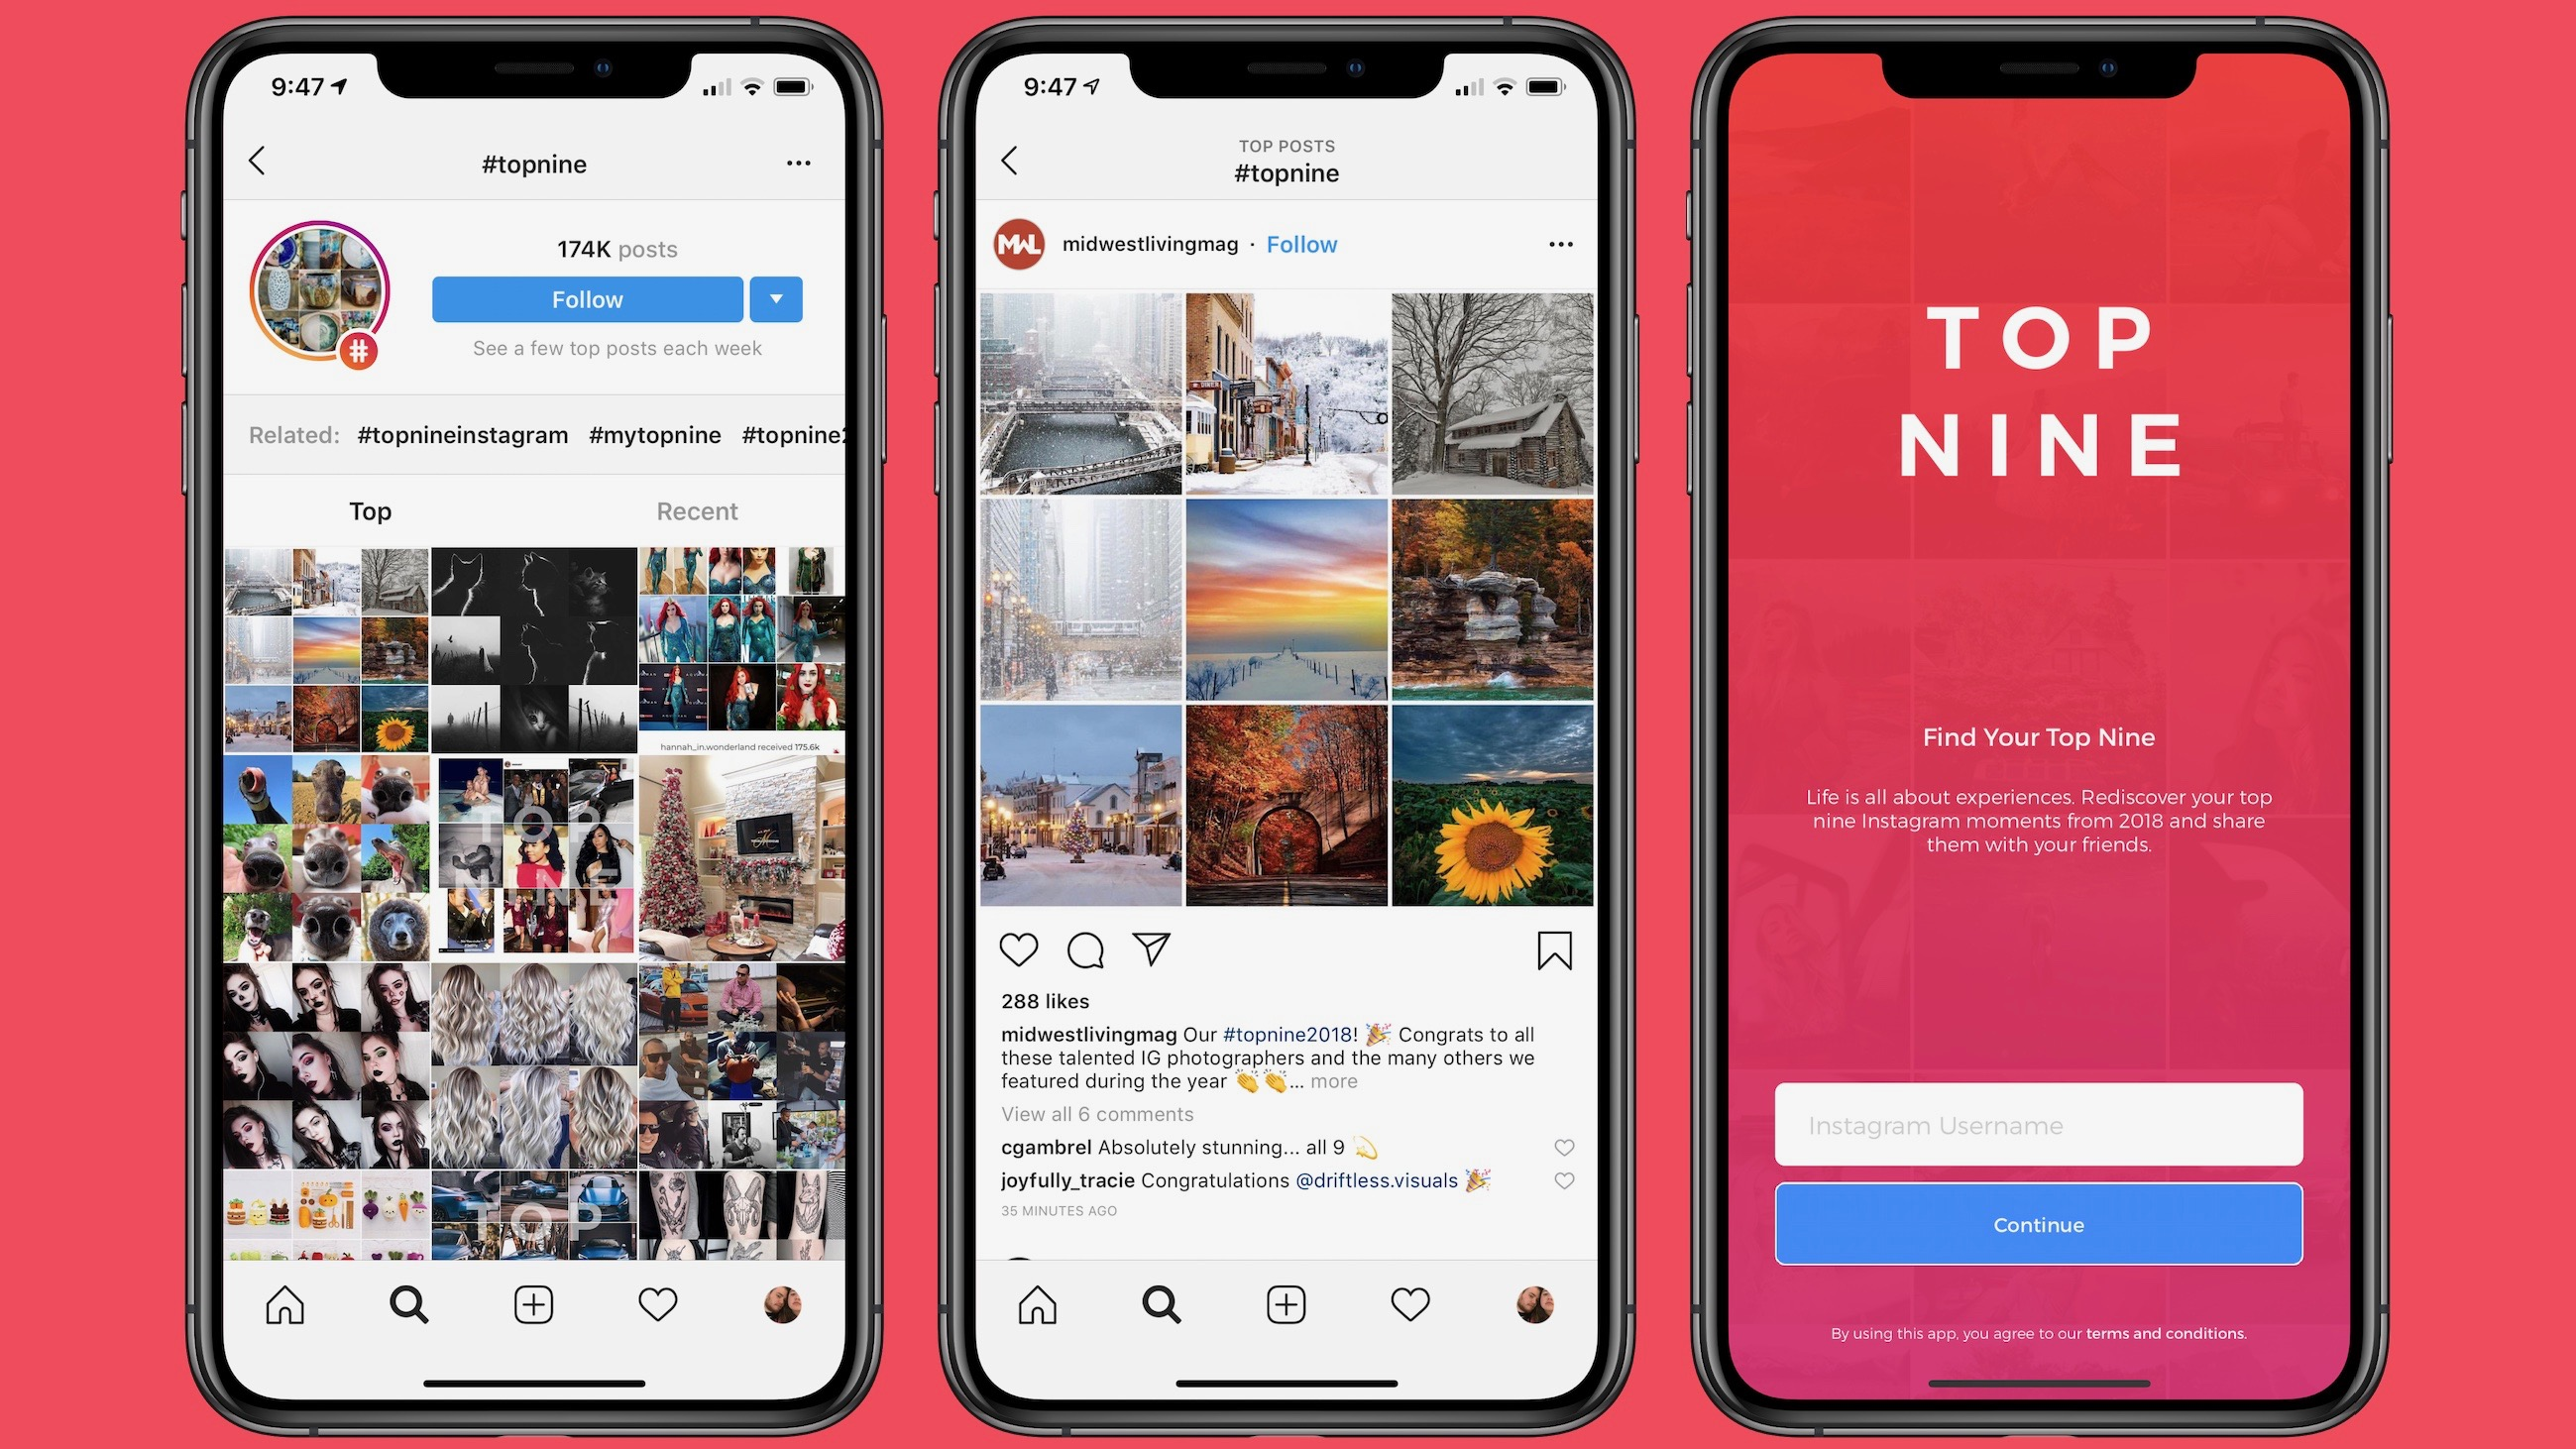 How to create and share your own Instagram Top 9 year in review